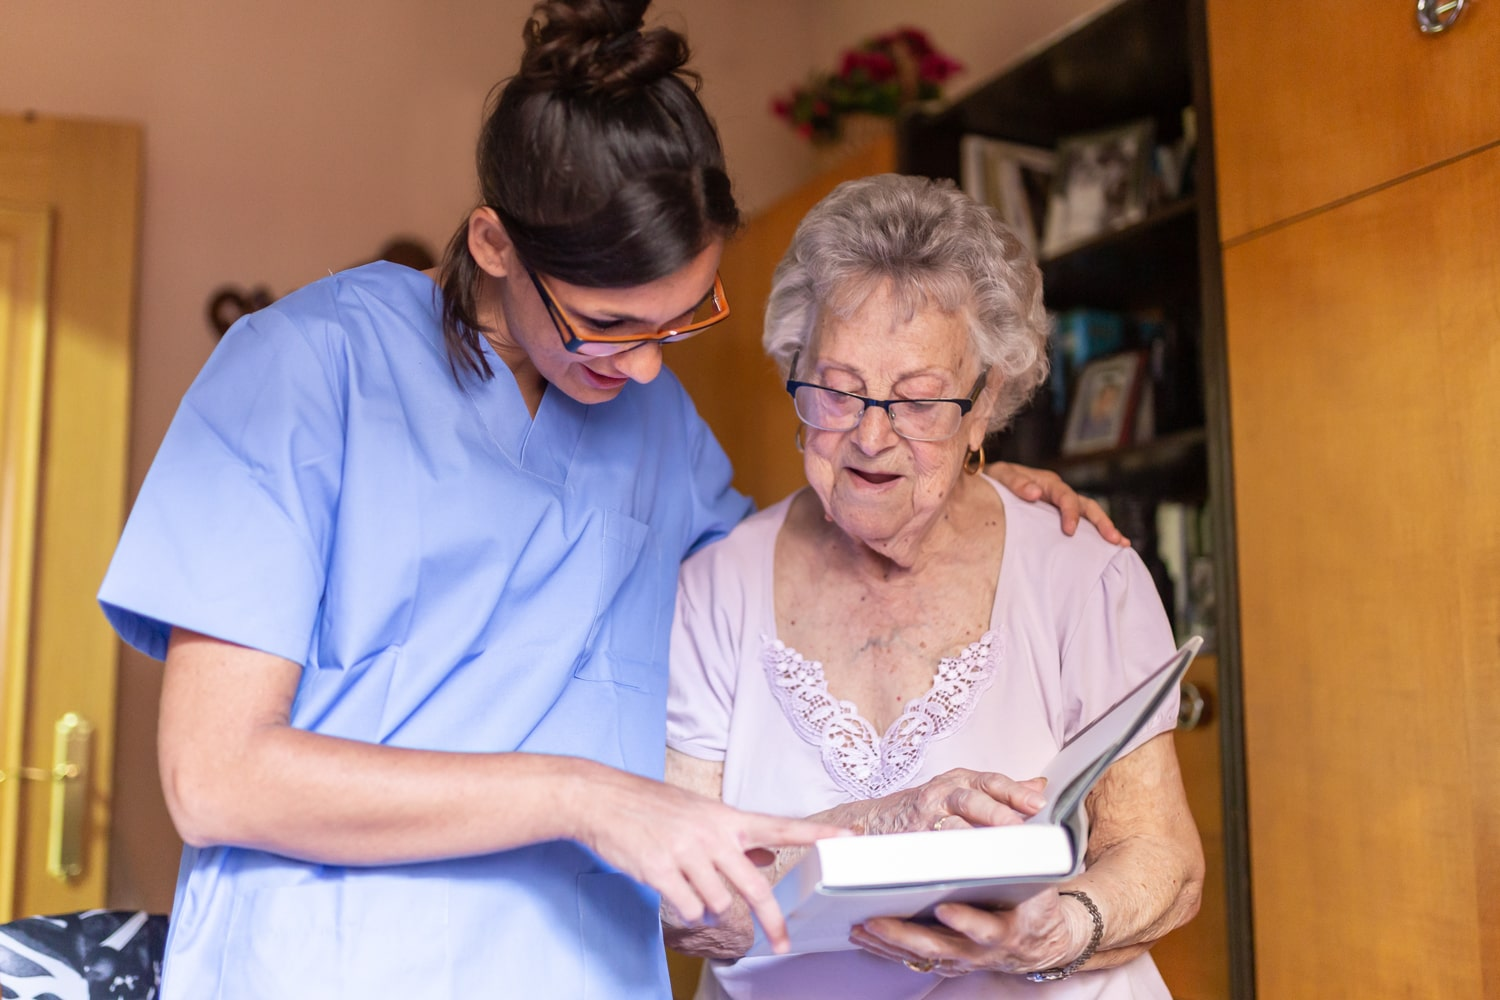 caregiver and senior woman looking at a book